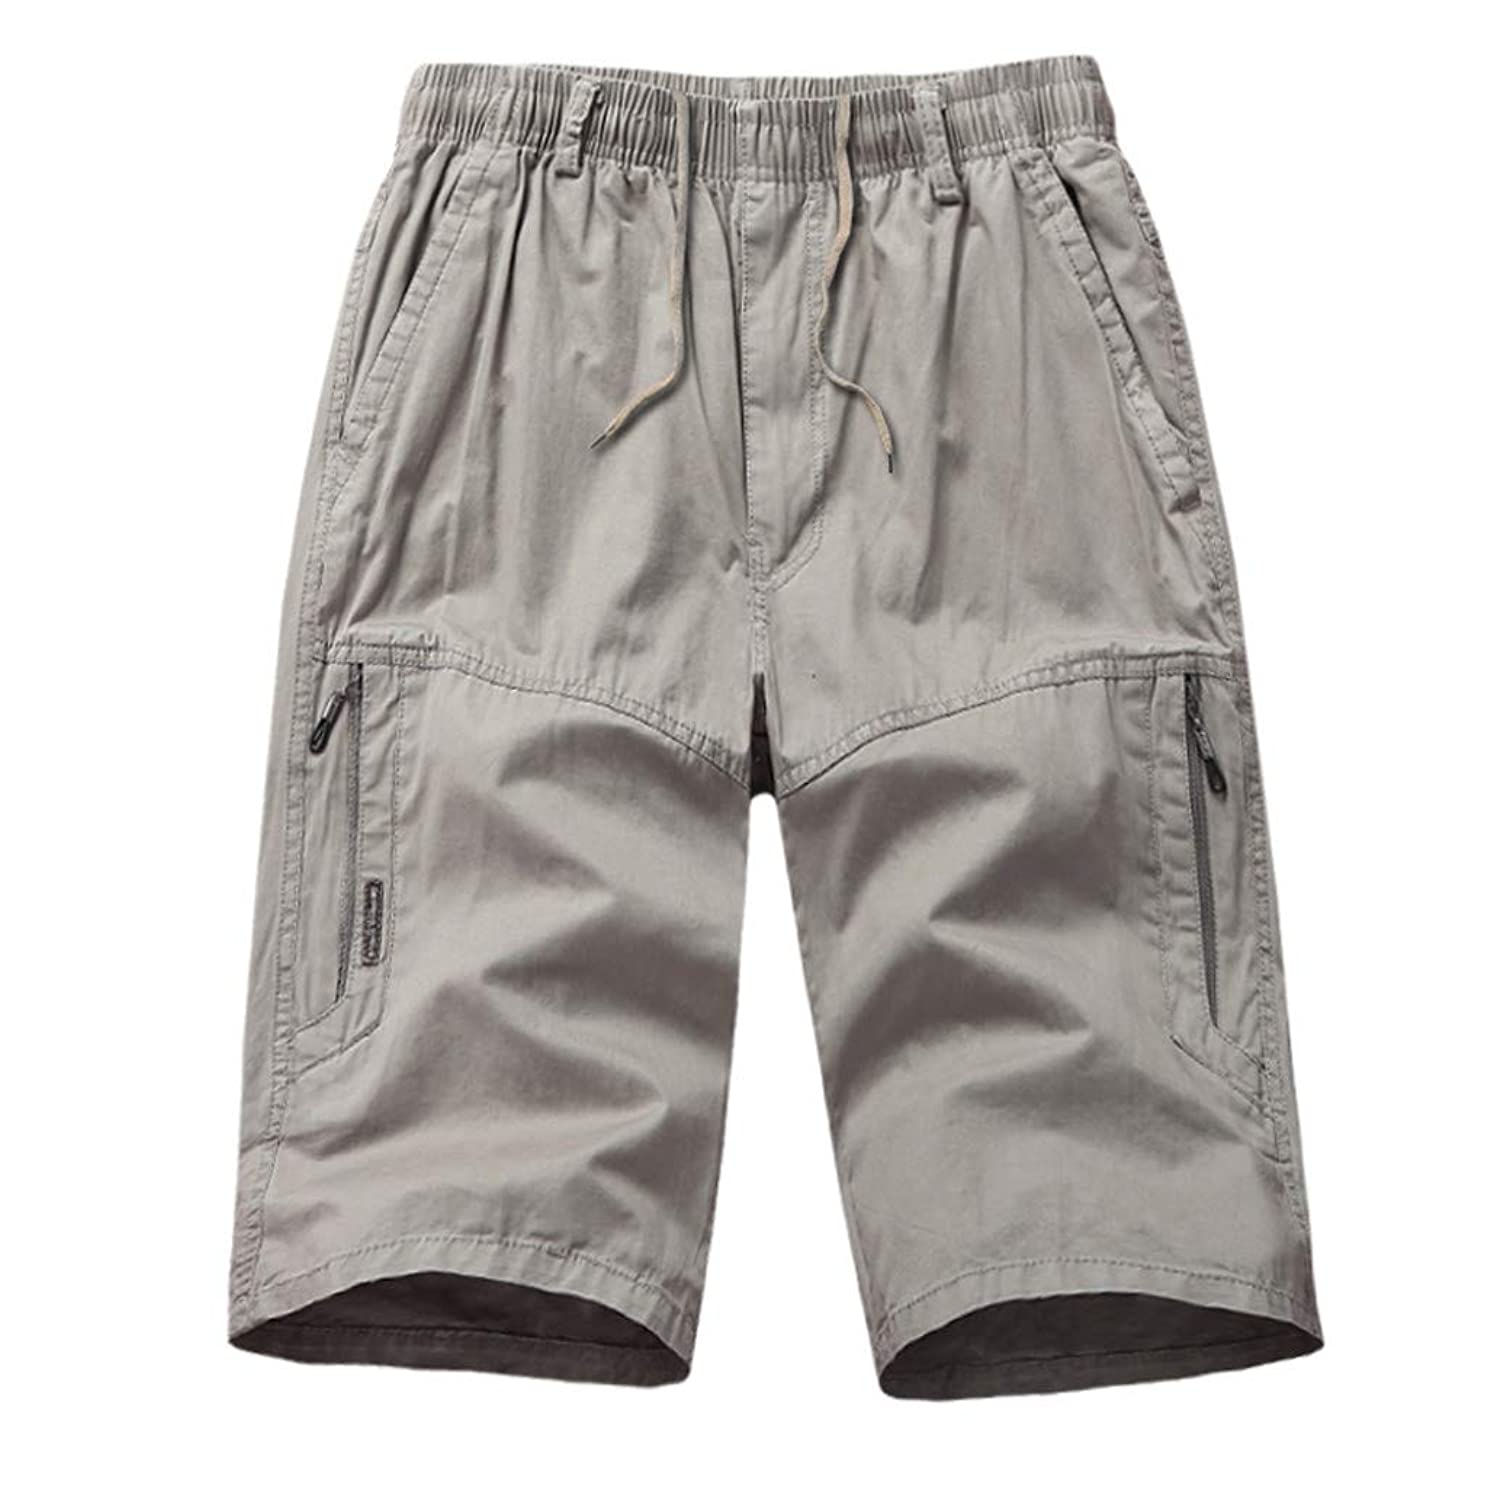 Mens Shorts Cargo Big and Tall Loose Fit Mens Shorts Casual 7 Inch with Pockets